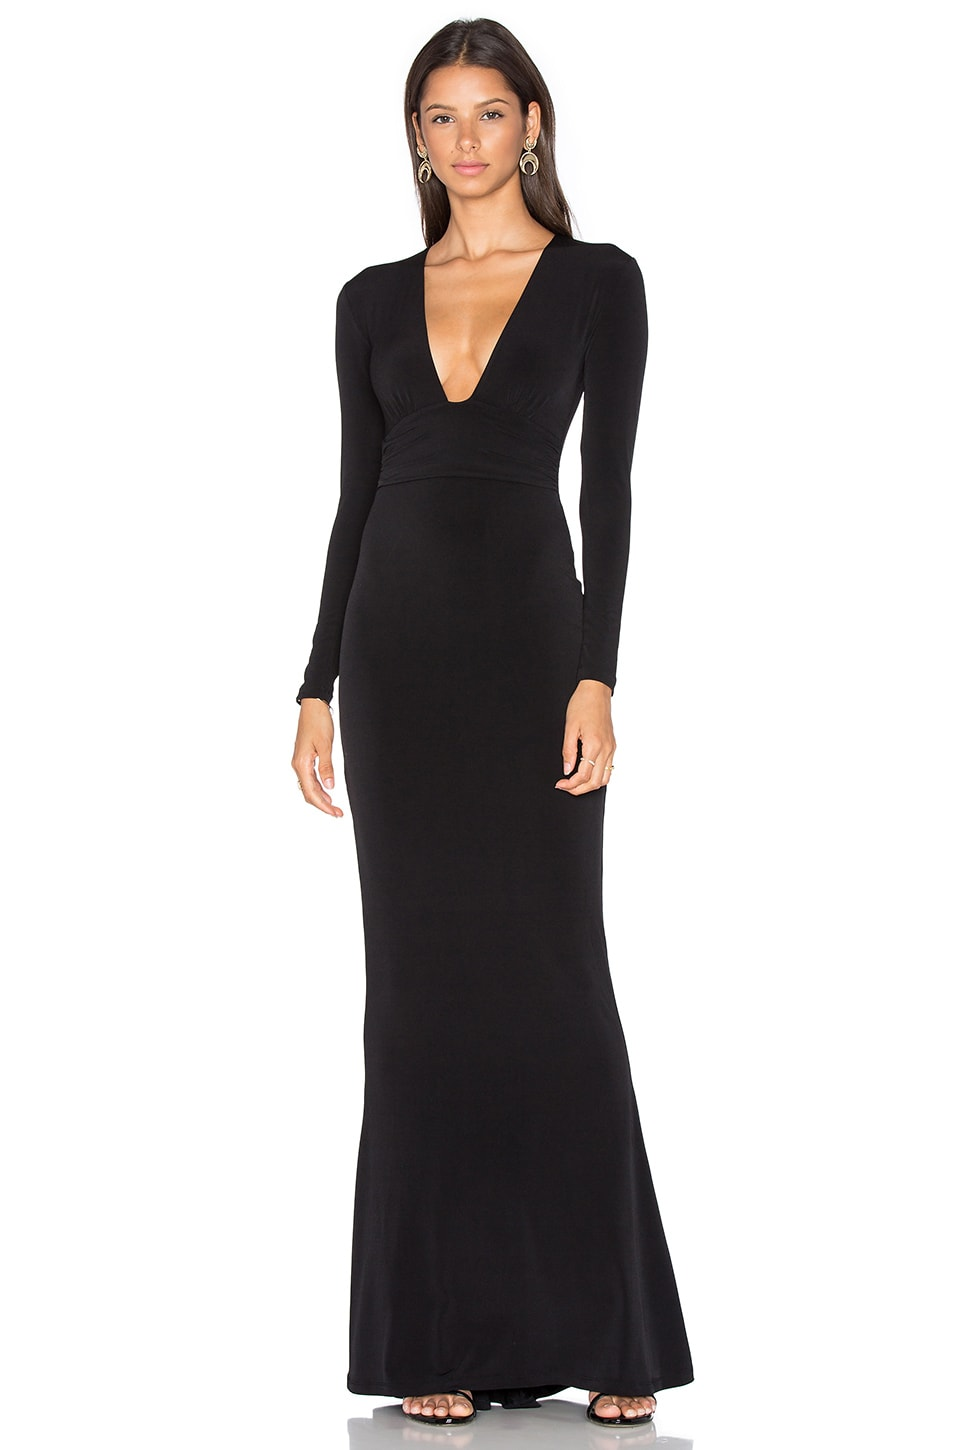 Nookie Cherish Long Sleeve Maxi Dress in Black